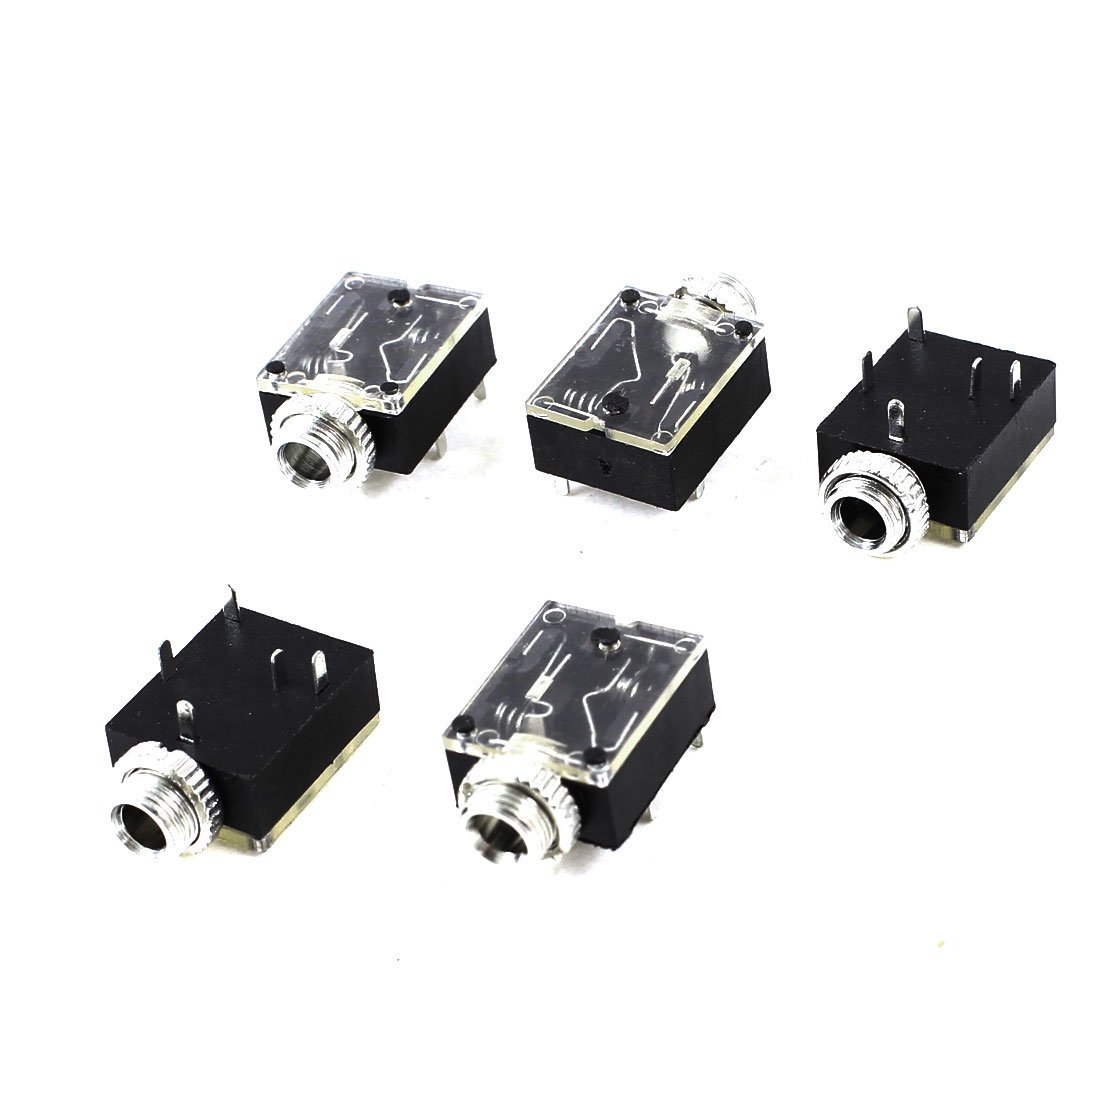 wsfs 5 pcs 5 pin 3 5mm audio stereo socket pcb panel mount in connectors from